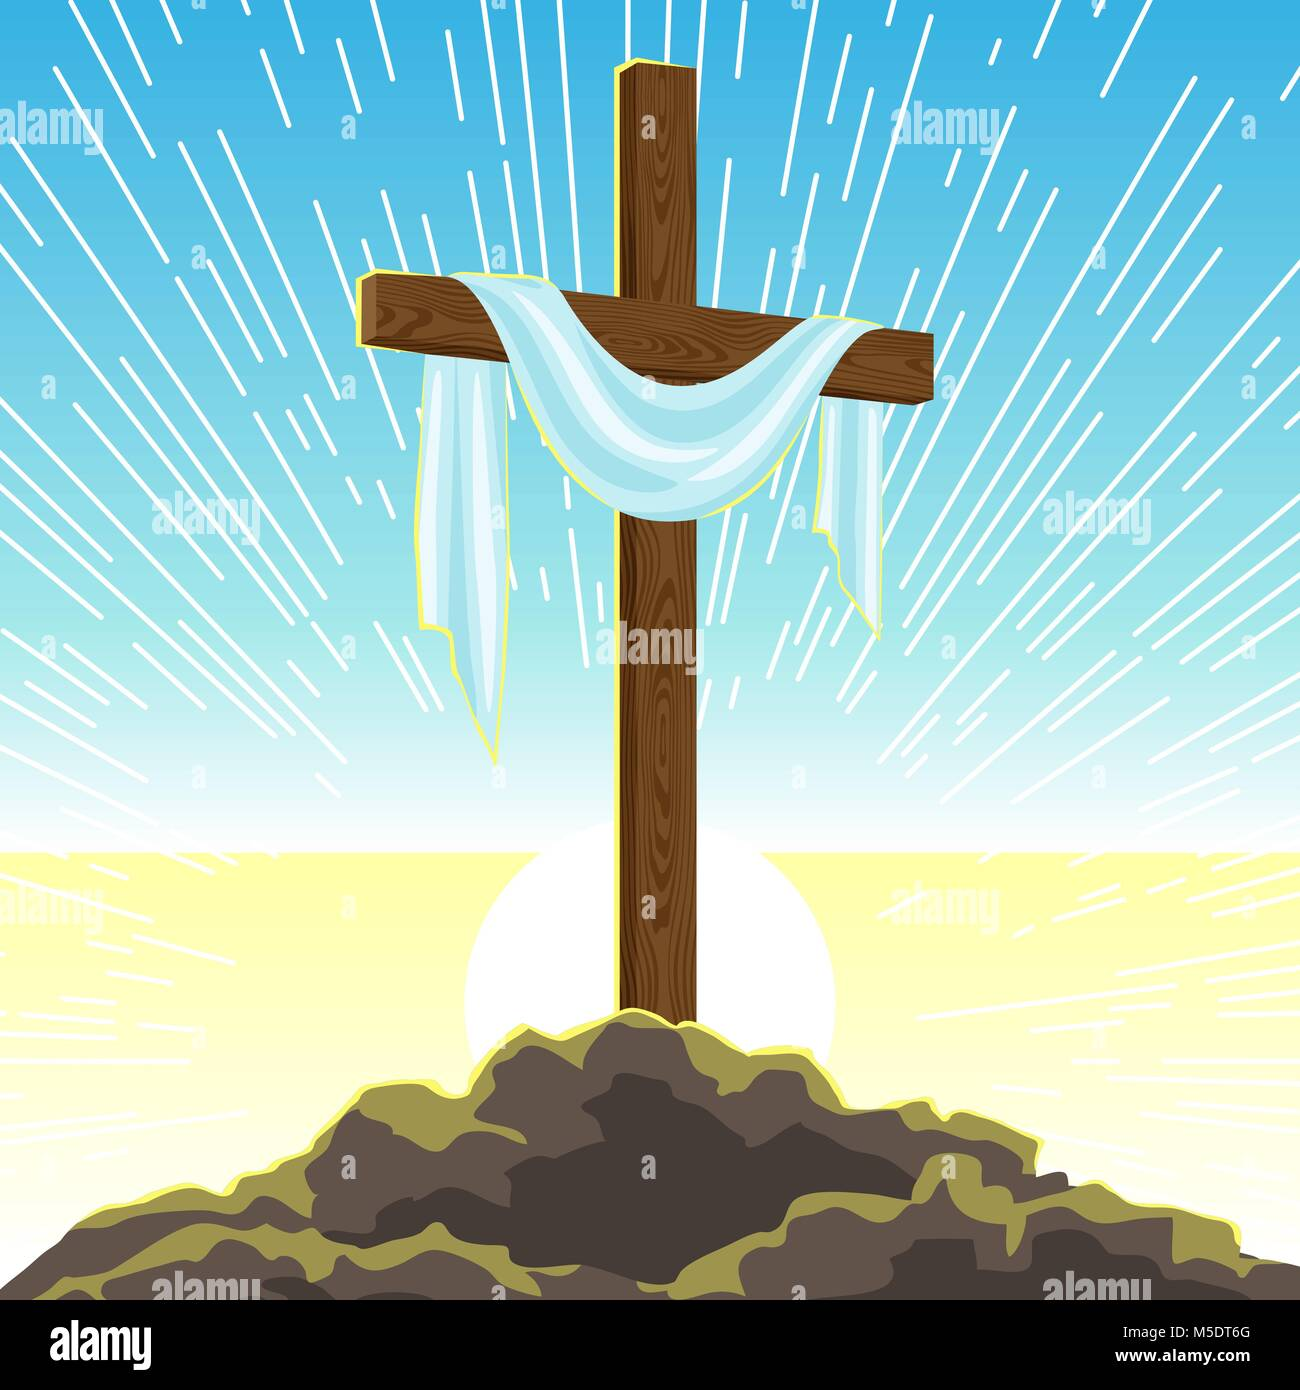 Silhouette Of Wooden Cross With Shroud Happy Easter Concept Stock